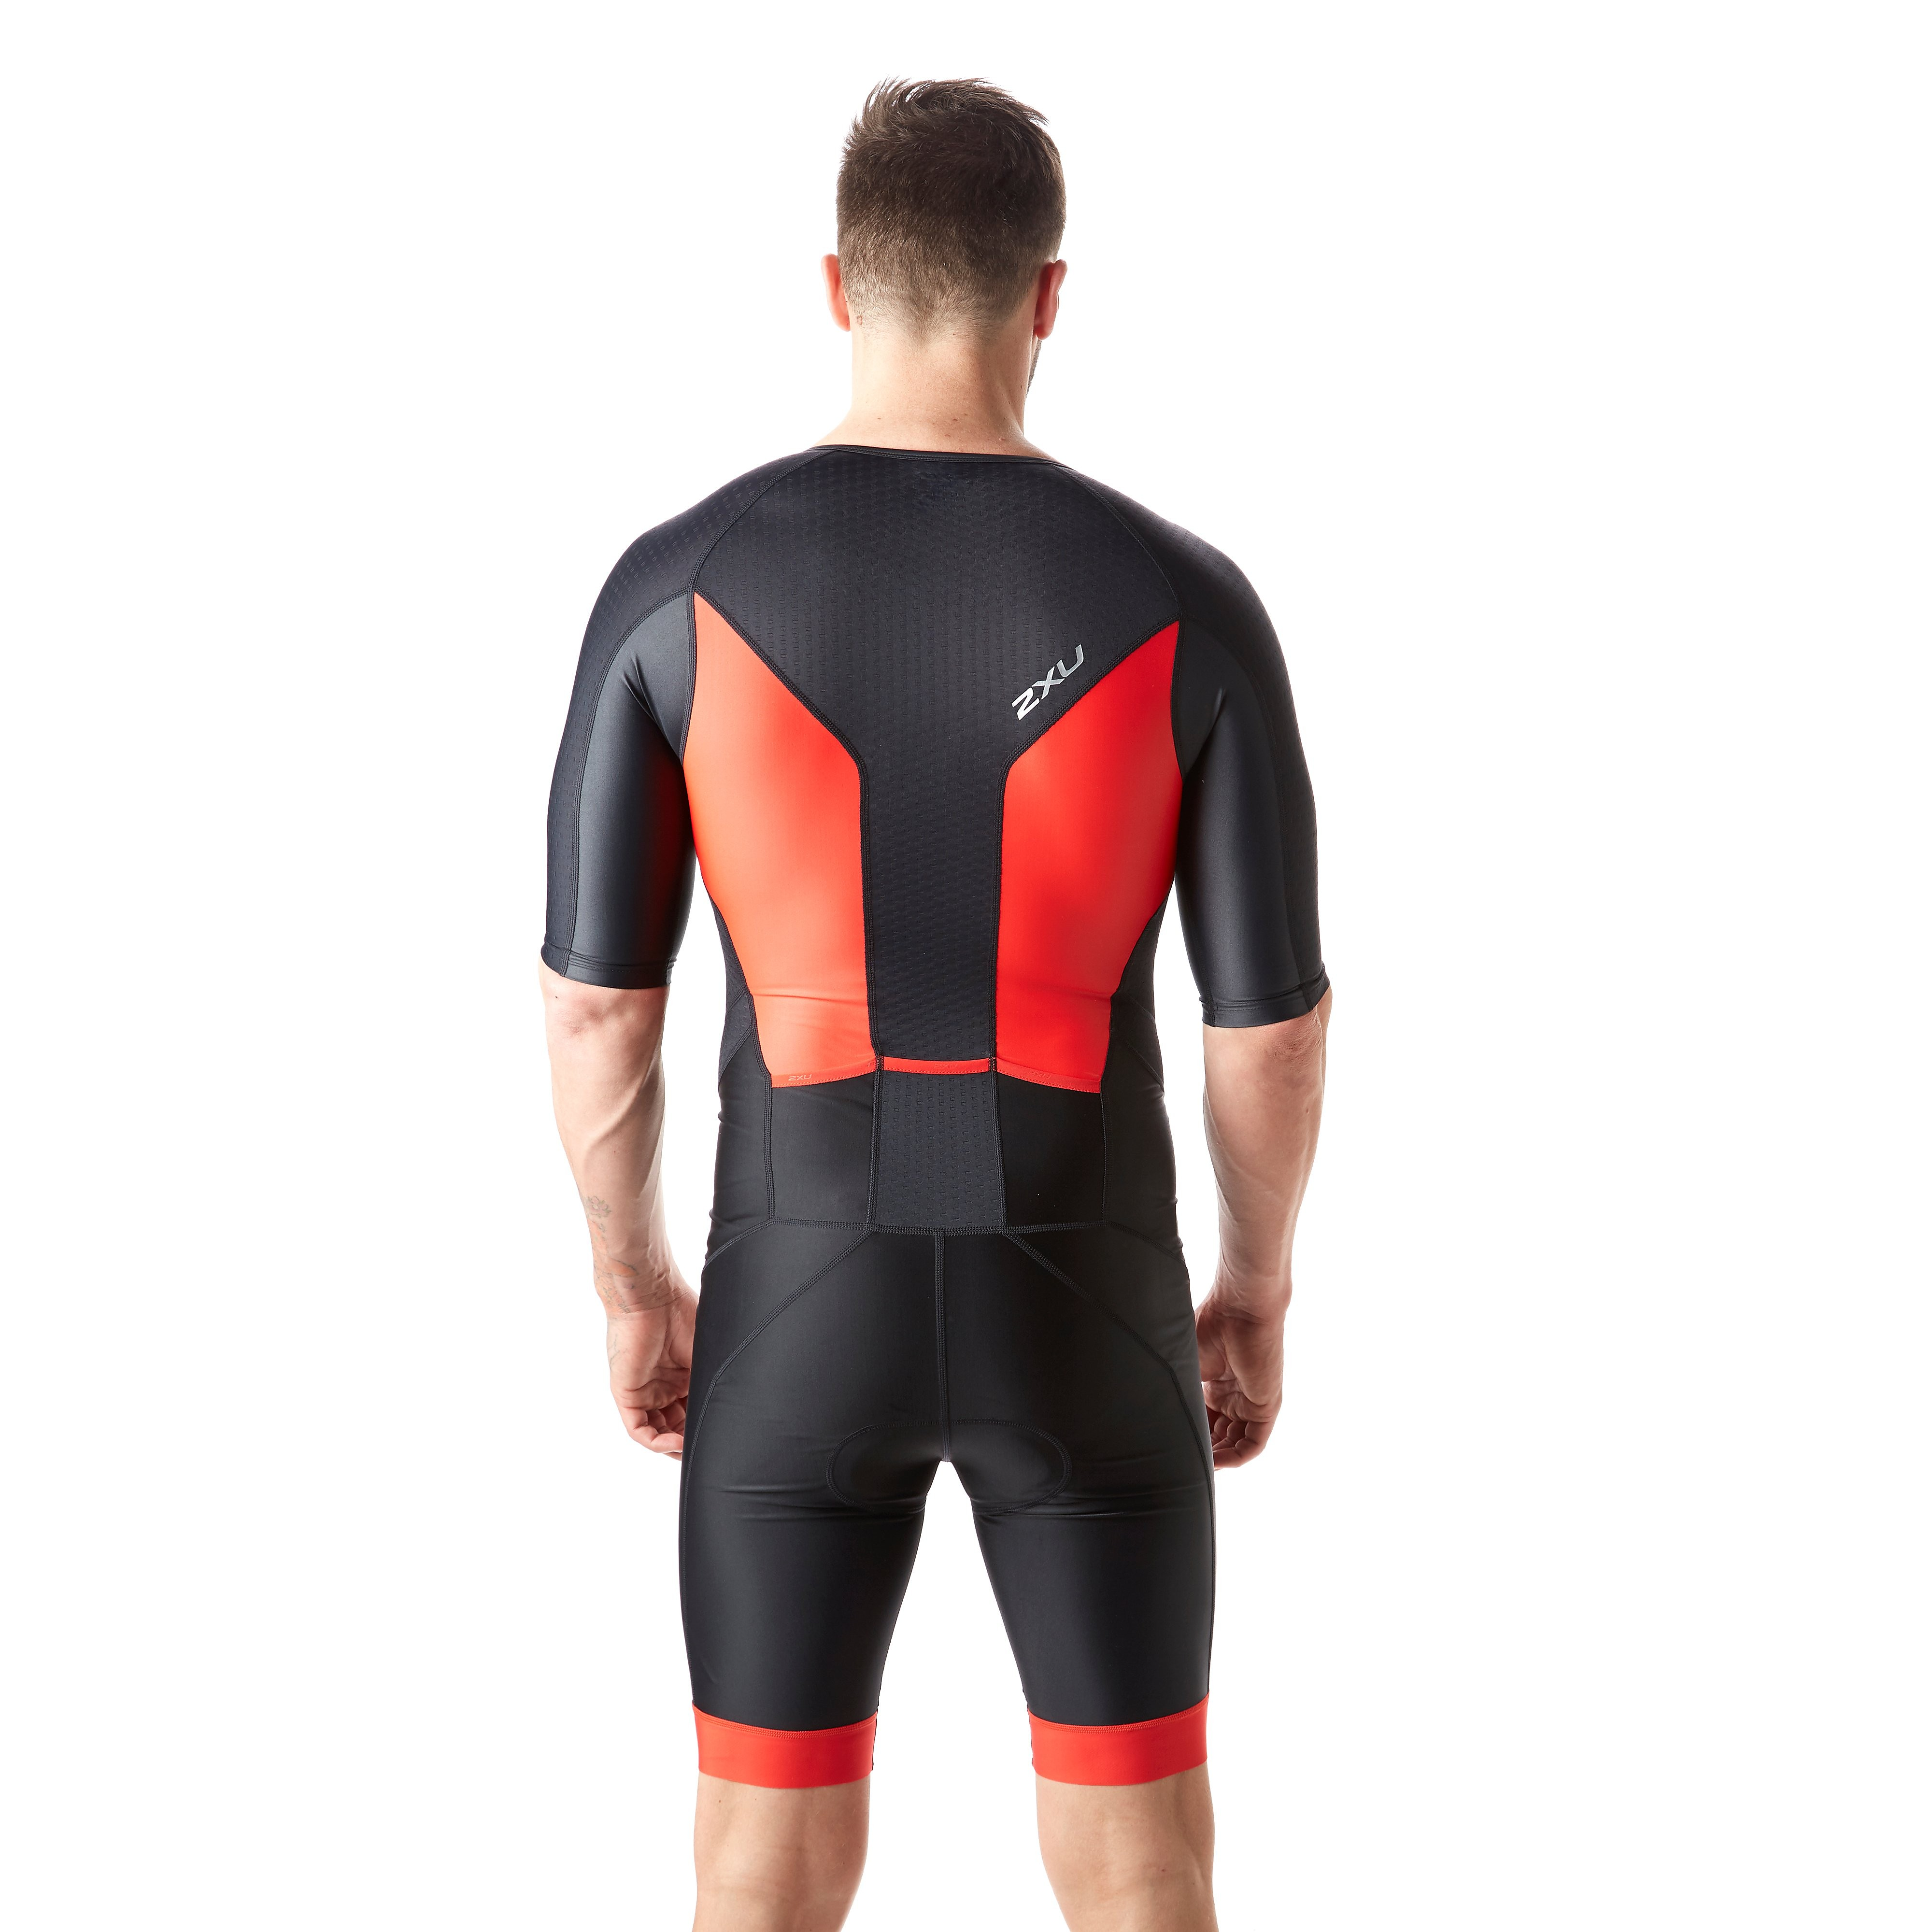 2XU Perform Full Zip Sleeved Men's Trisuit